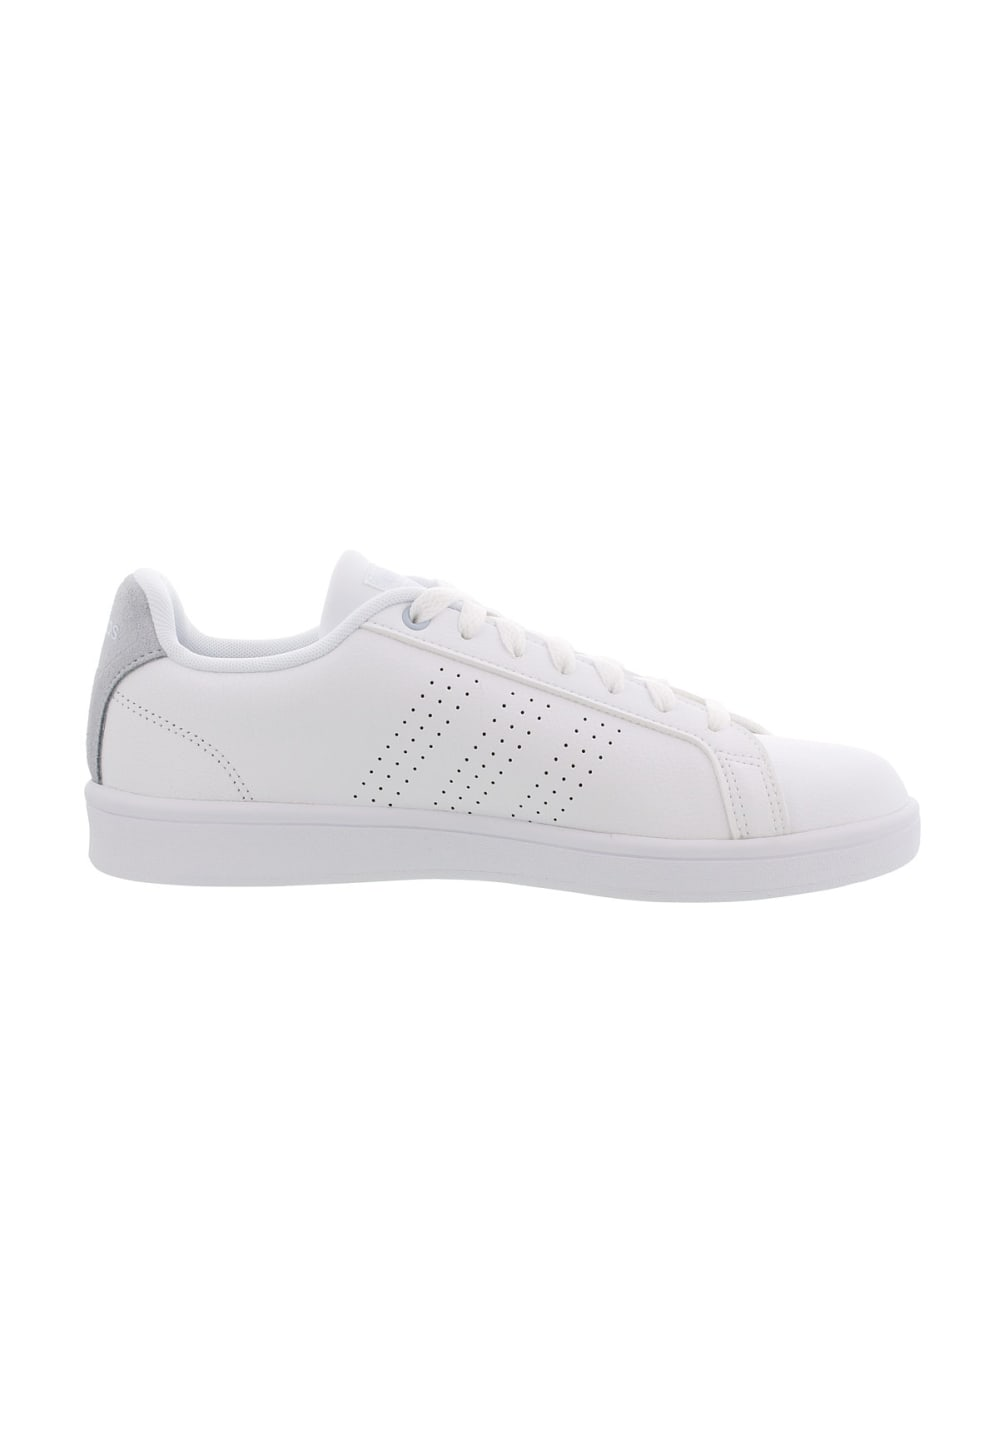 big sale fb482 4f8a1 Next. -50%. adidas neo. Cloudfoam Advantage Clean - Sneaker for Women.  Regular Price ...